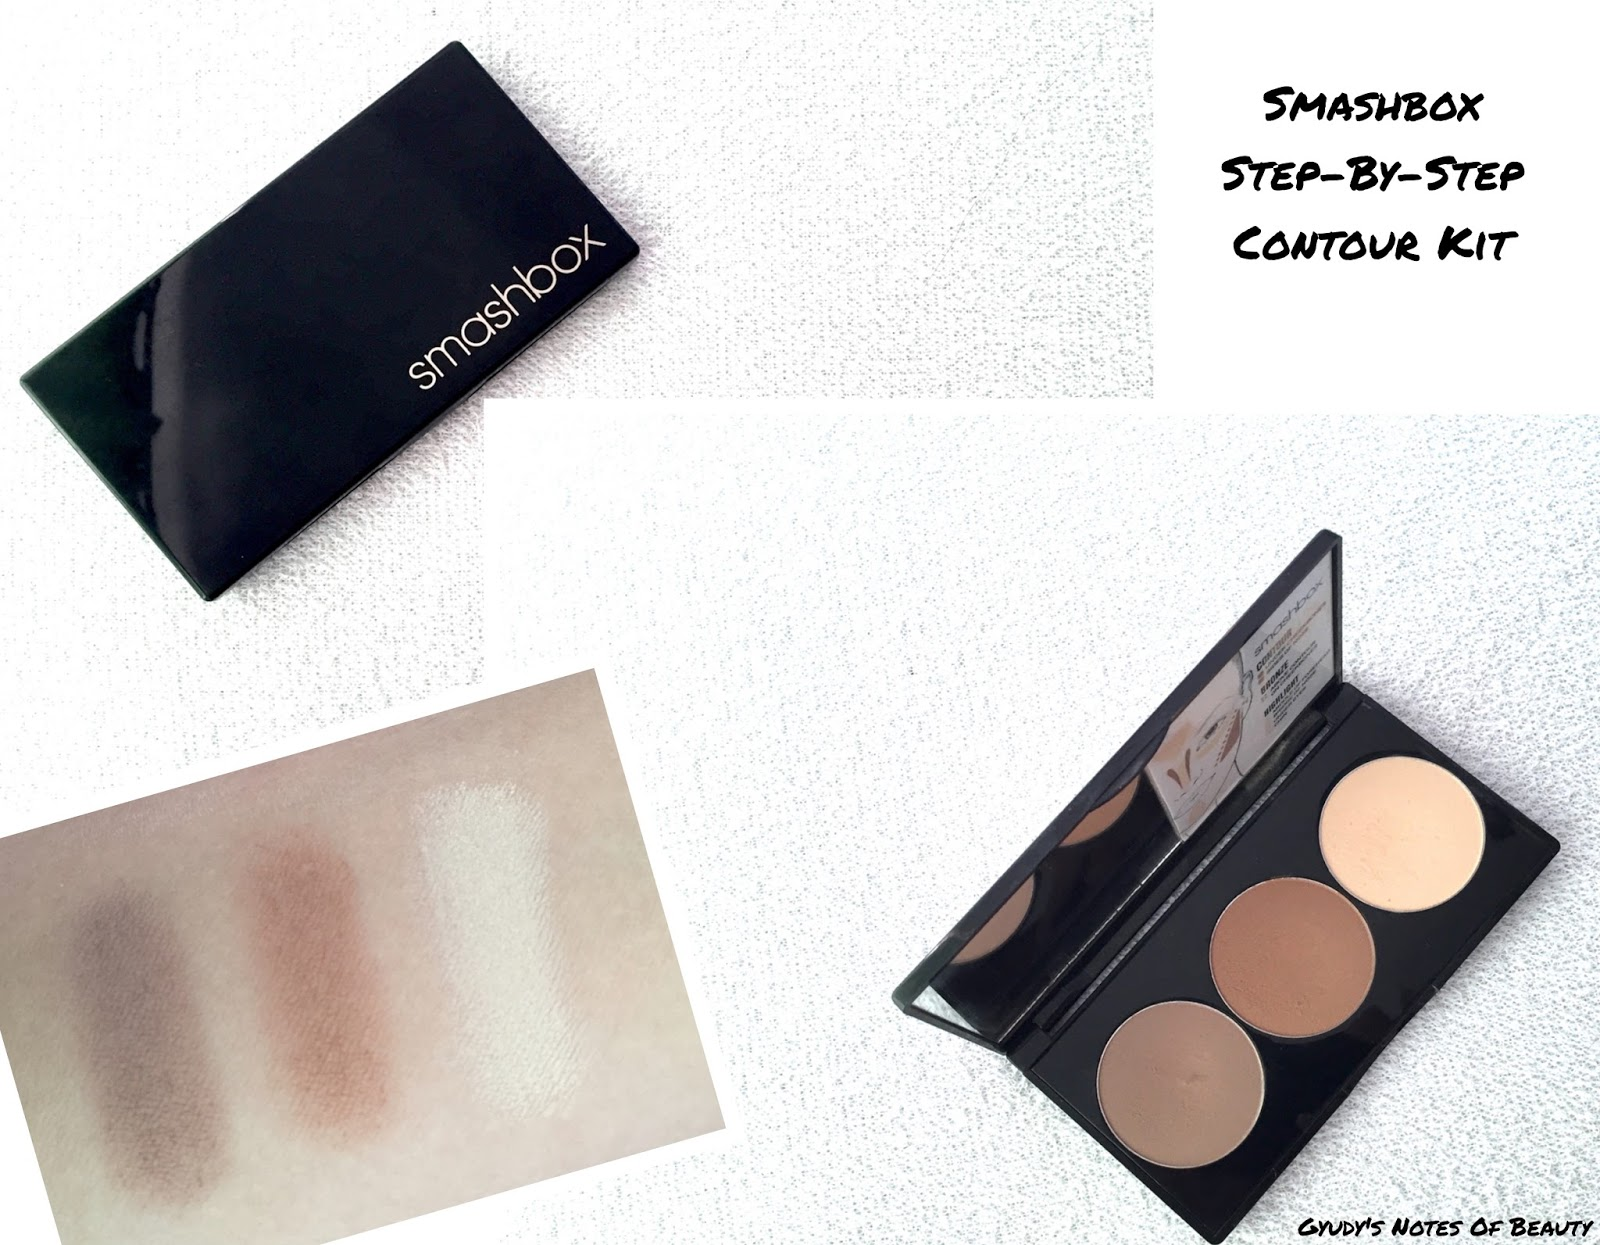 Gyudy's Notes Of Beauty: Smashbox Step-By-Step Contour Kit Review